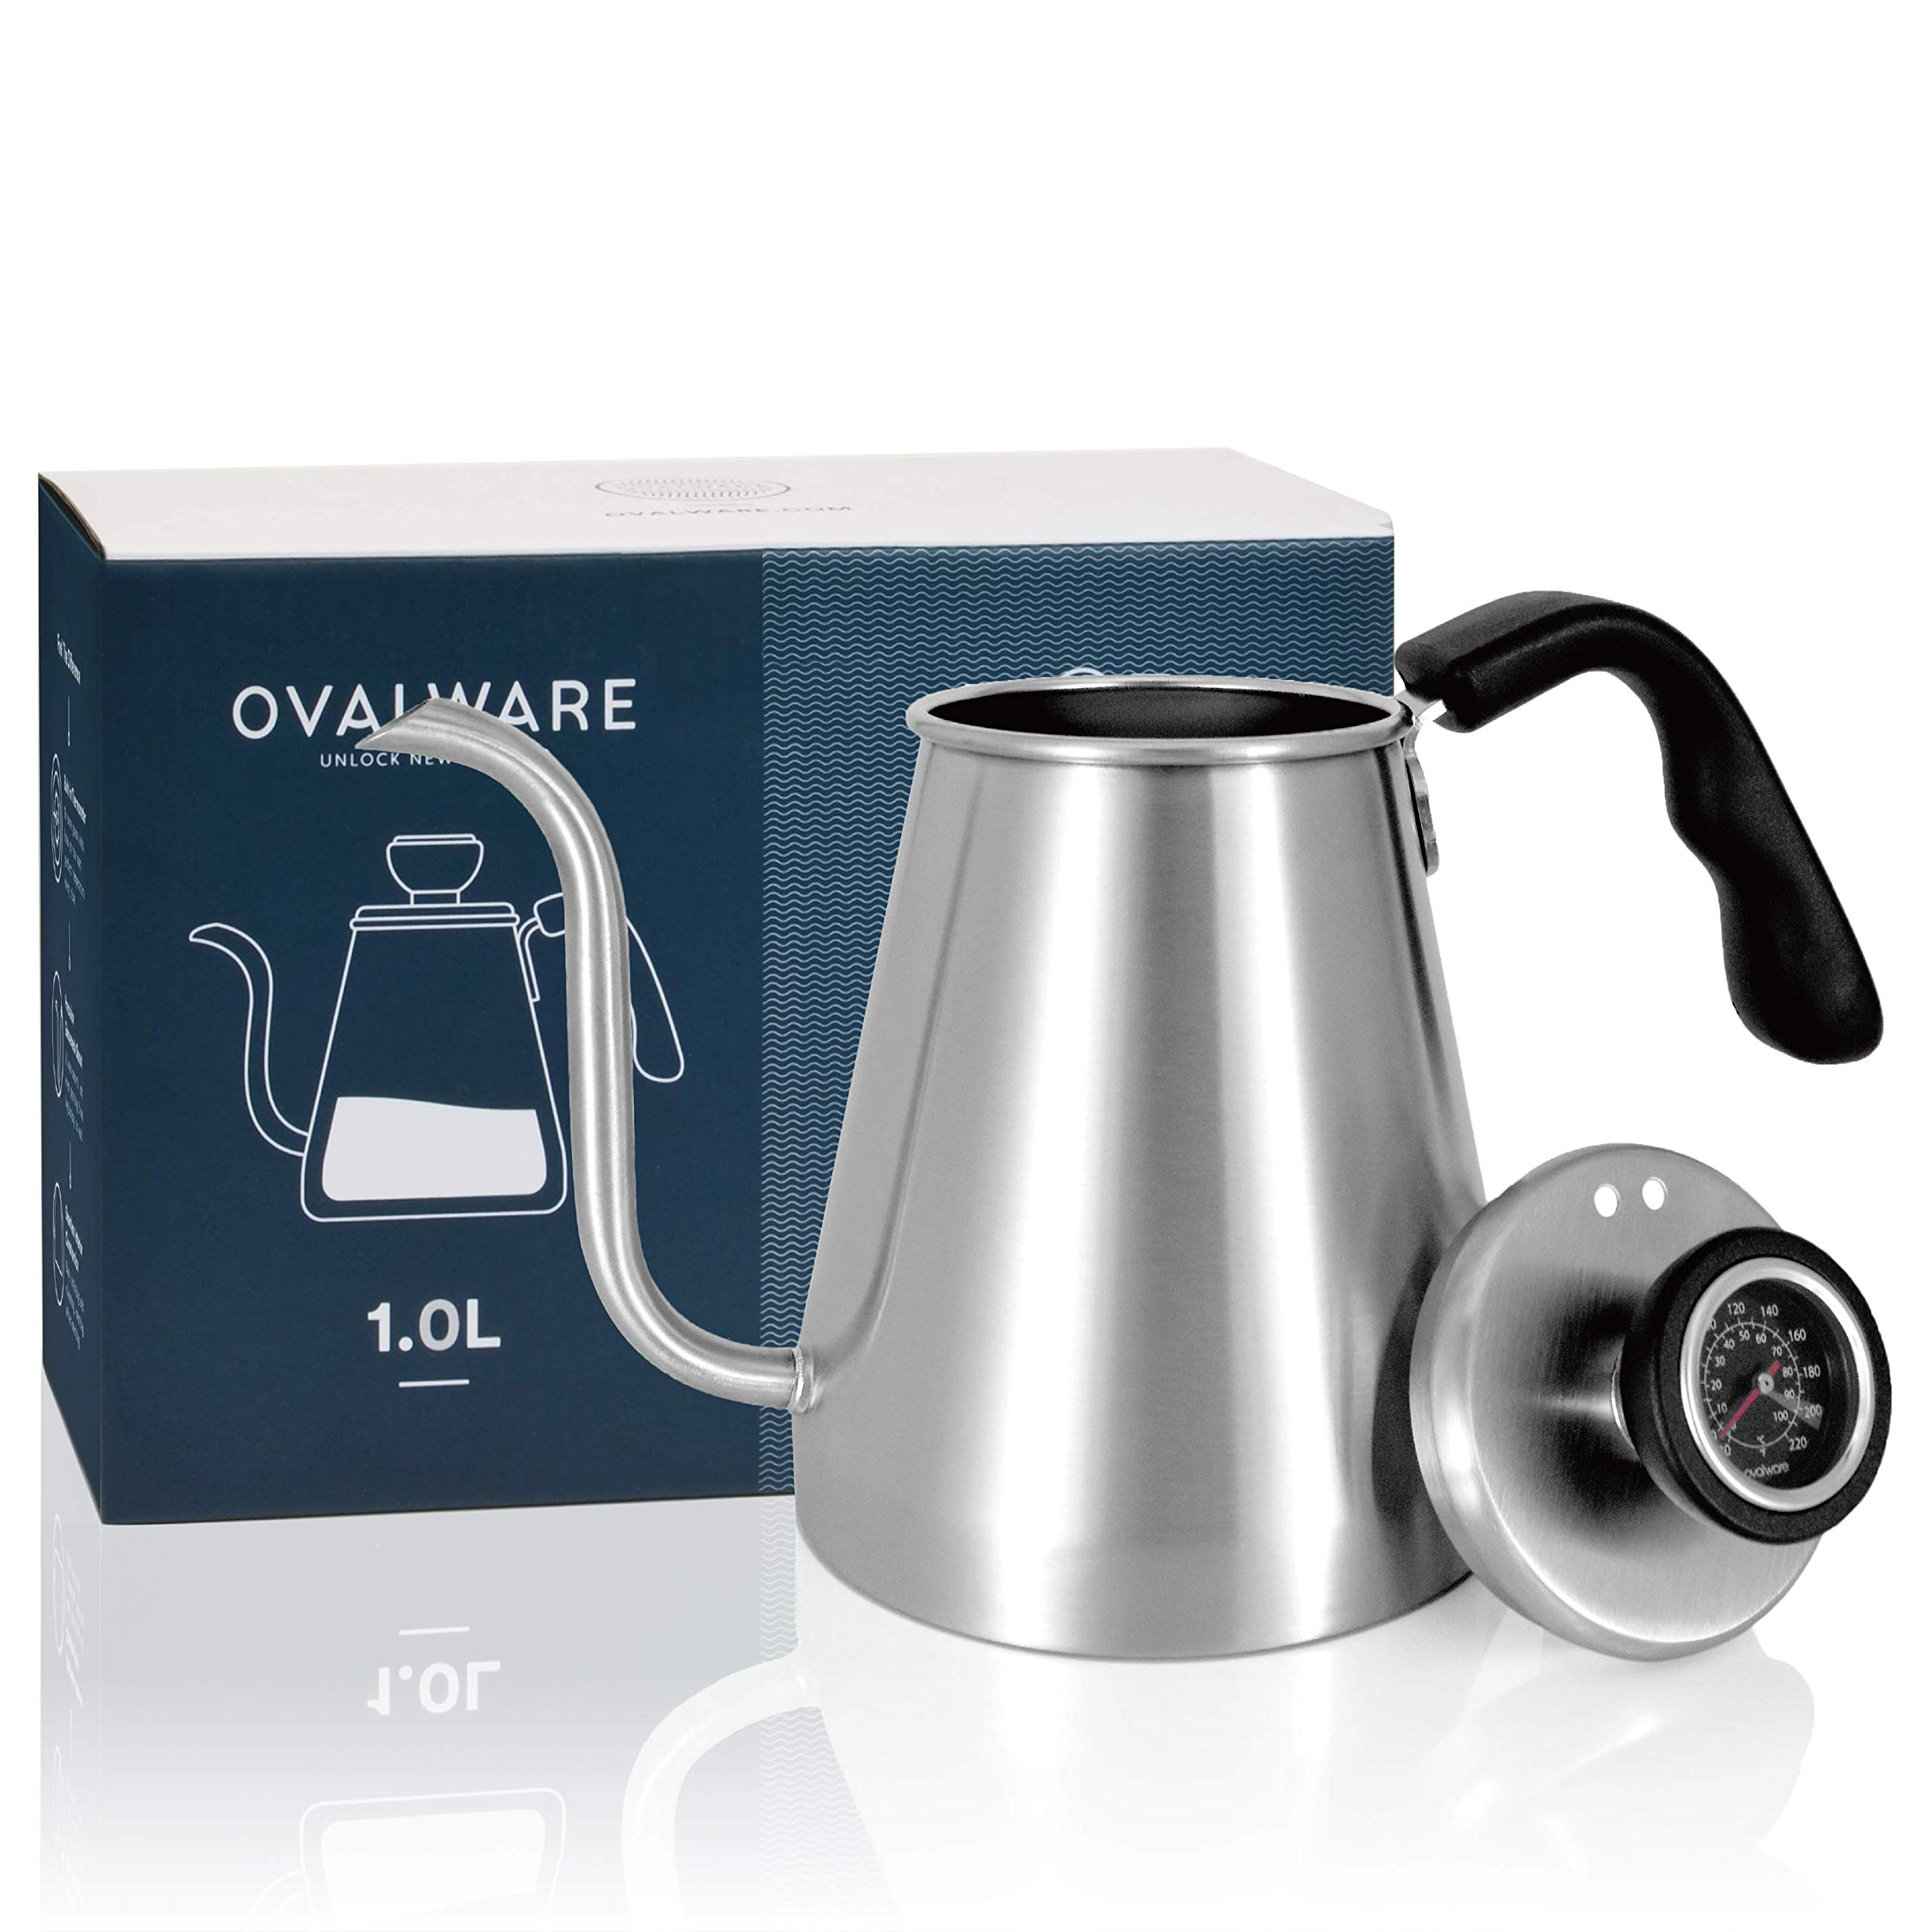 Pour Over Coffee Kettle and Tea Kettle with Built-in Thermometer 1.0L/34oz - Ovalware RJ3 Stainless Steel Drip Kettle with Precision Gooseneck Spout for Home Brewing, Camping and Traveling by ovalware